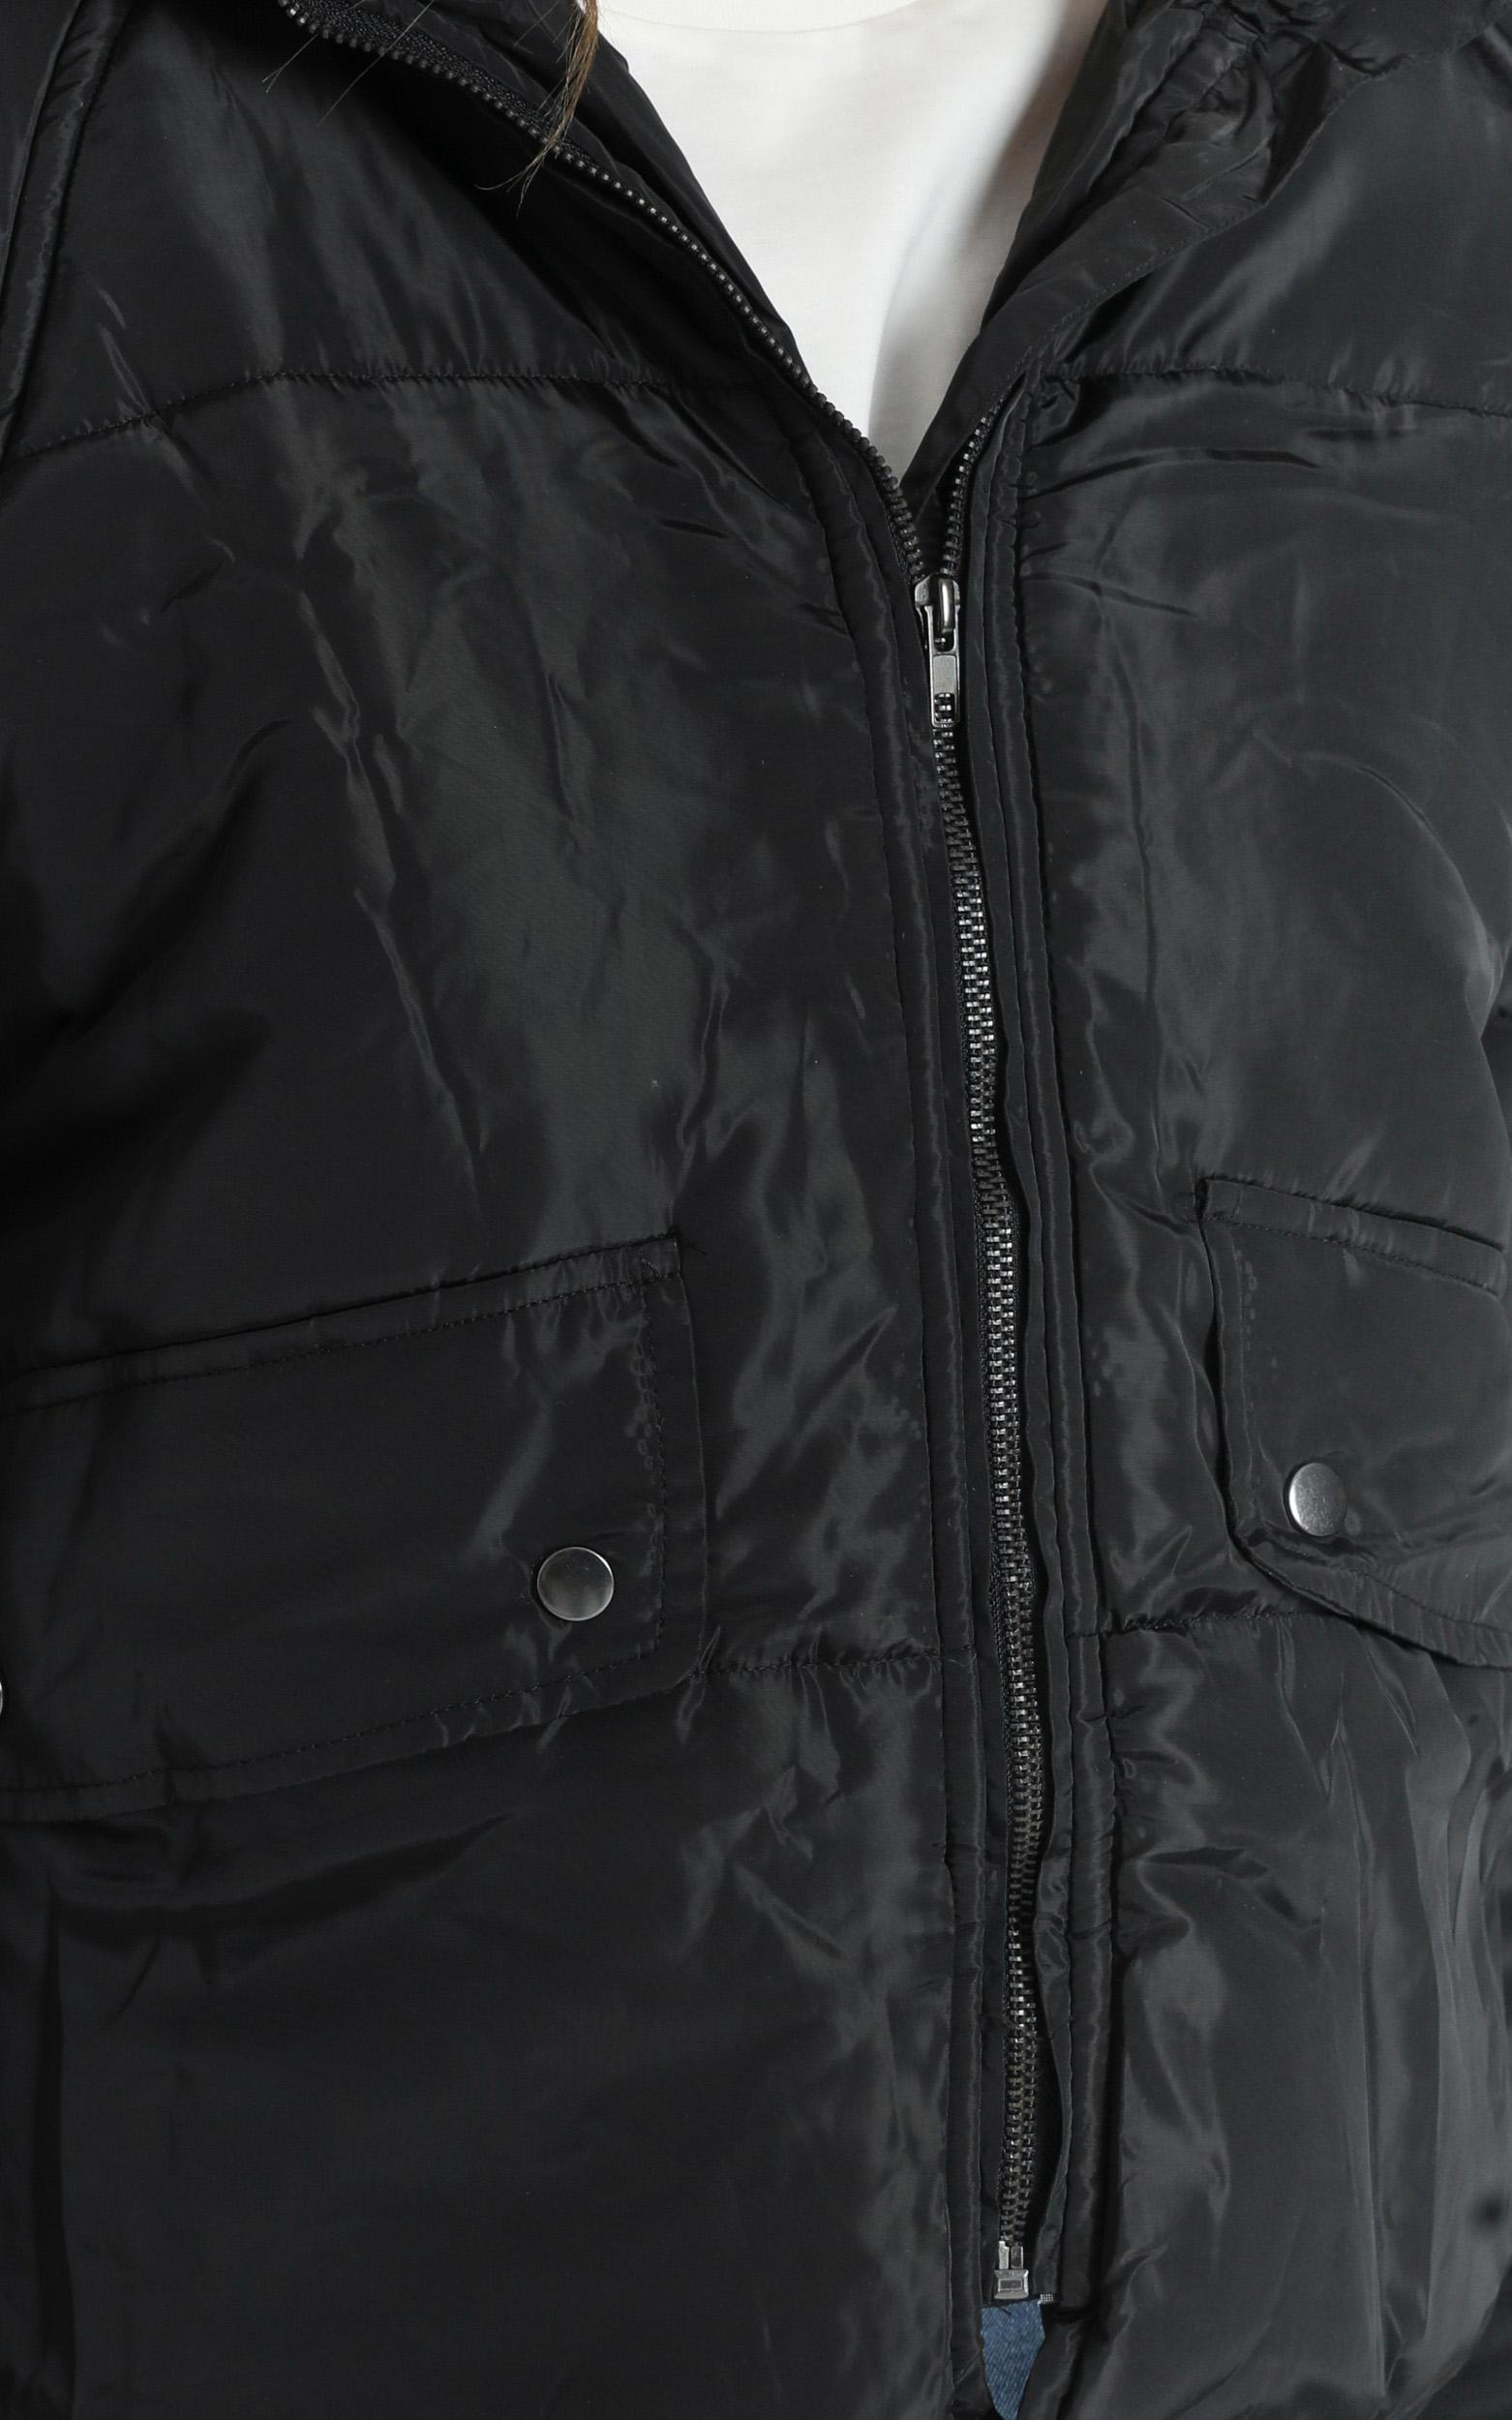 Markle Puffer Jacket in Black - XS/S, Black, hi-res image number null